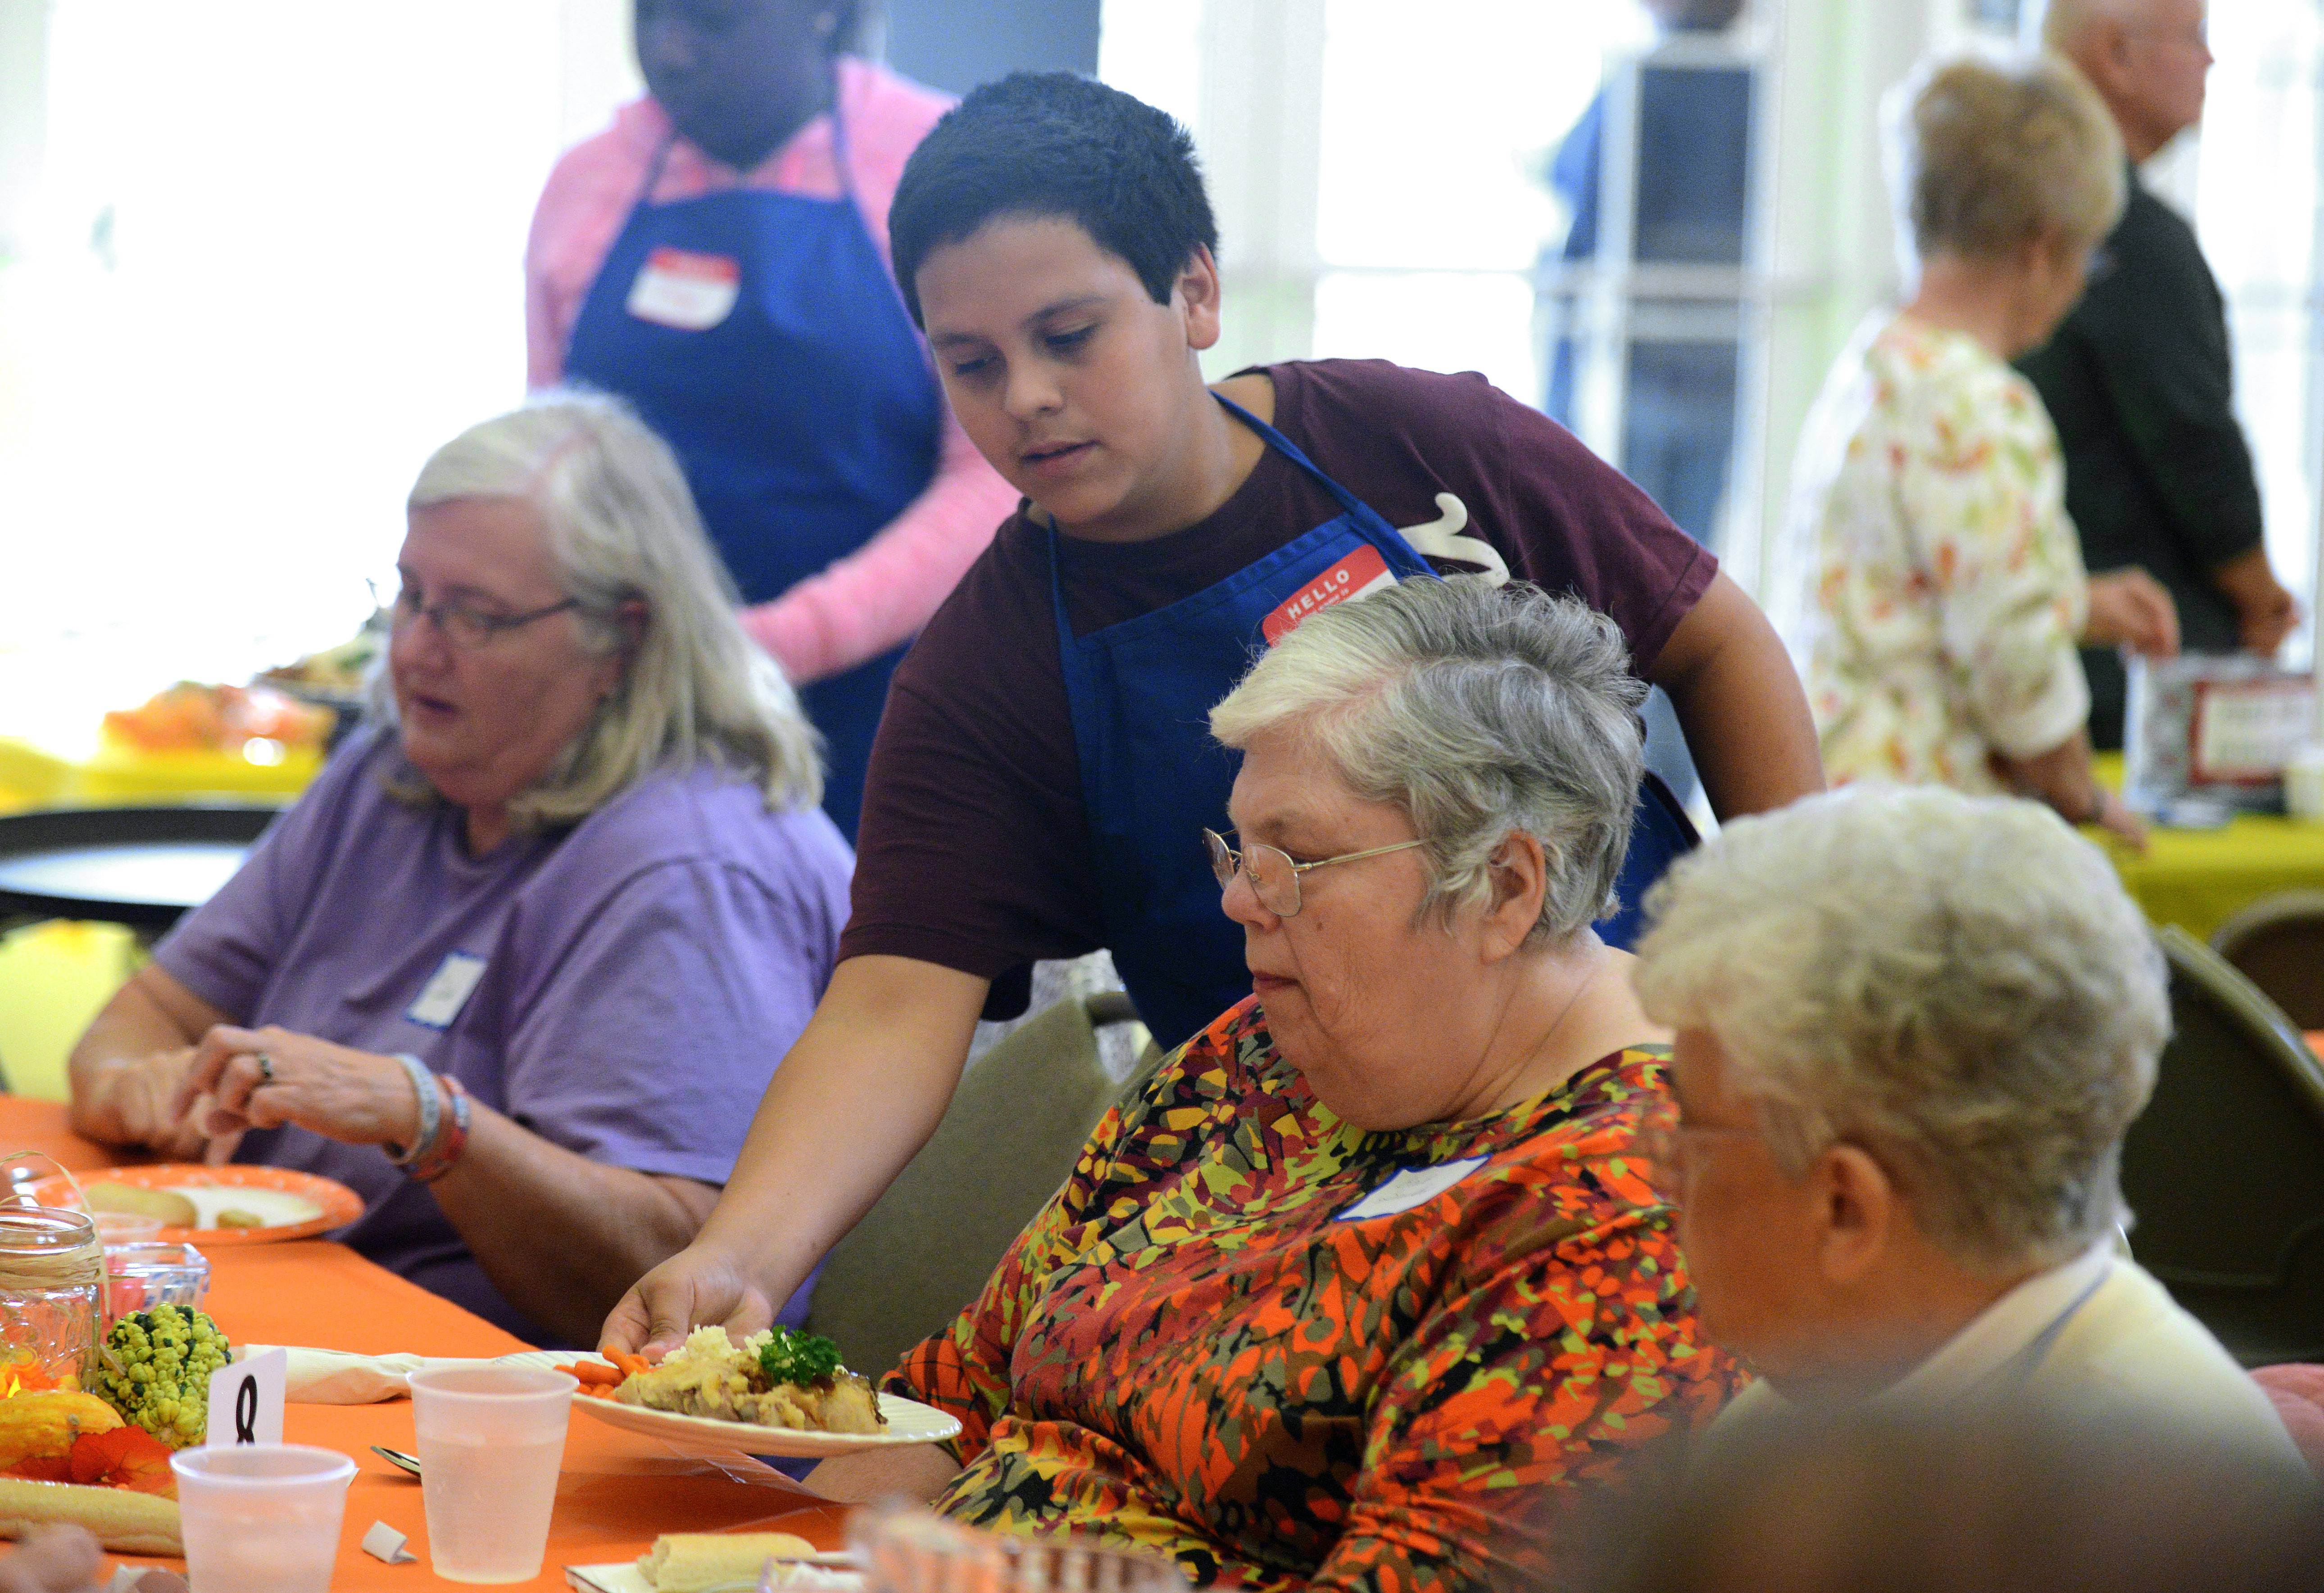 Volunteer Jose Alphonso, 12, of Carpentersville helps serve dinner at the Hilltop Community Supper hosted by First Congregational Church of Dundee in West Dundee.